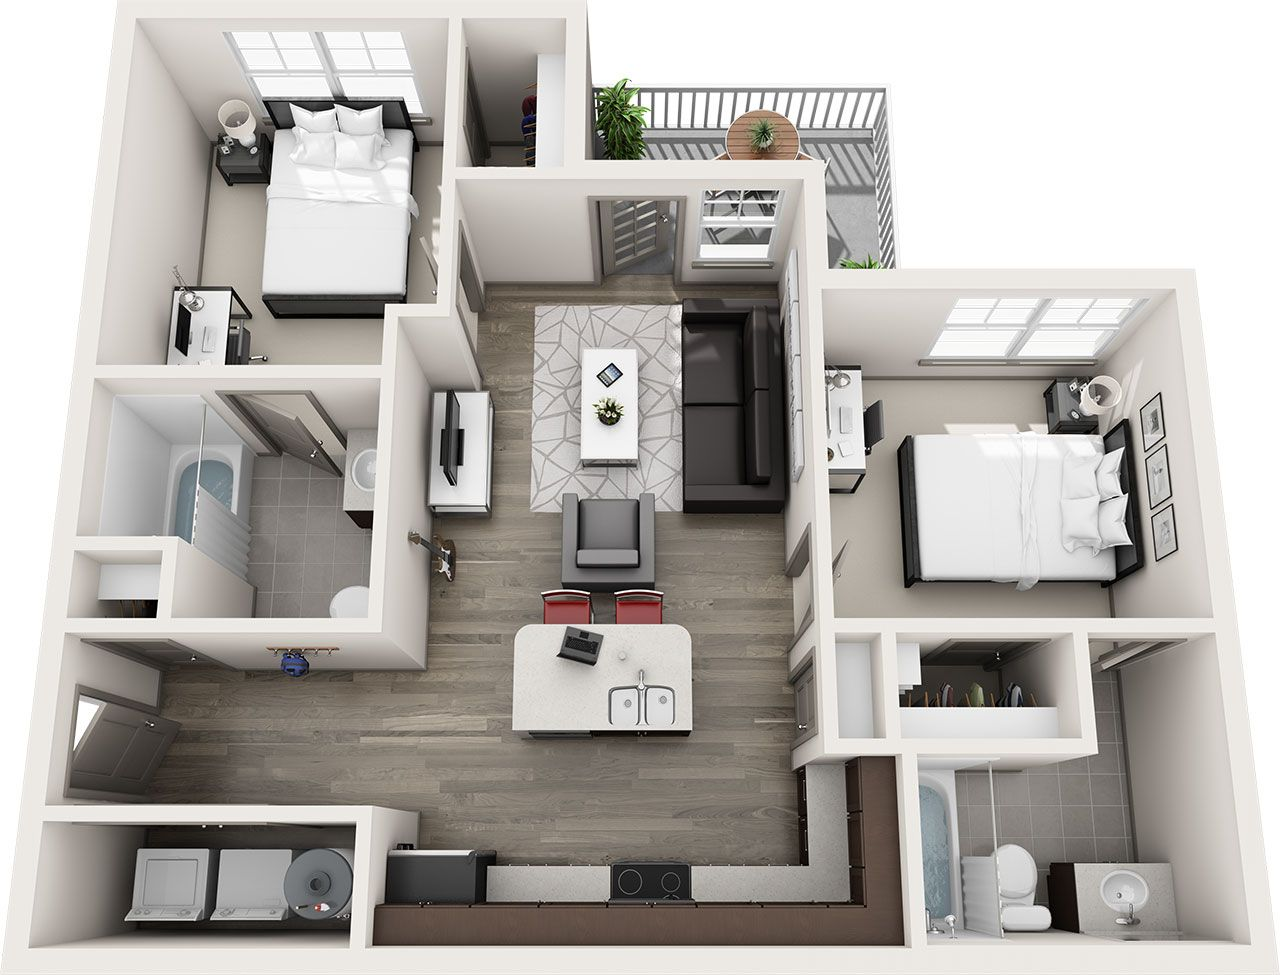 The Lodge Student Housing Allendale Michigan Floor Plans Sims House Design House Layout Plans Sims House